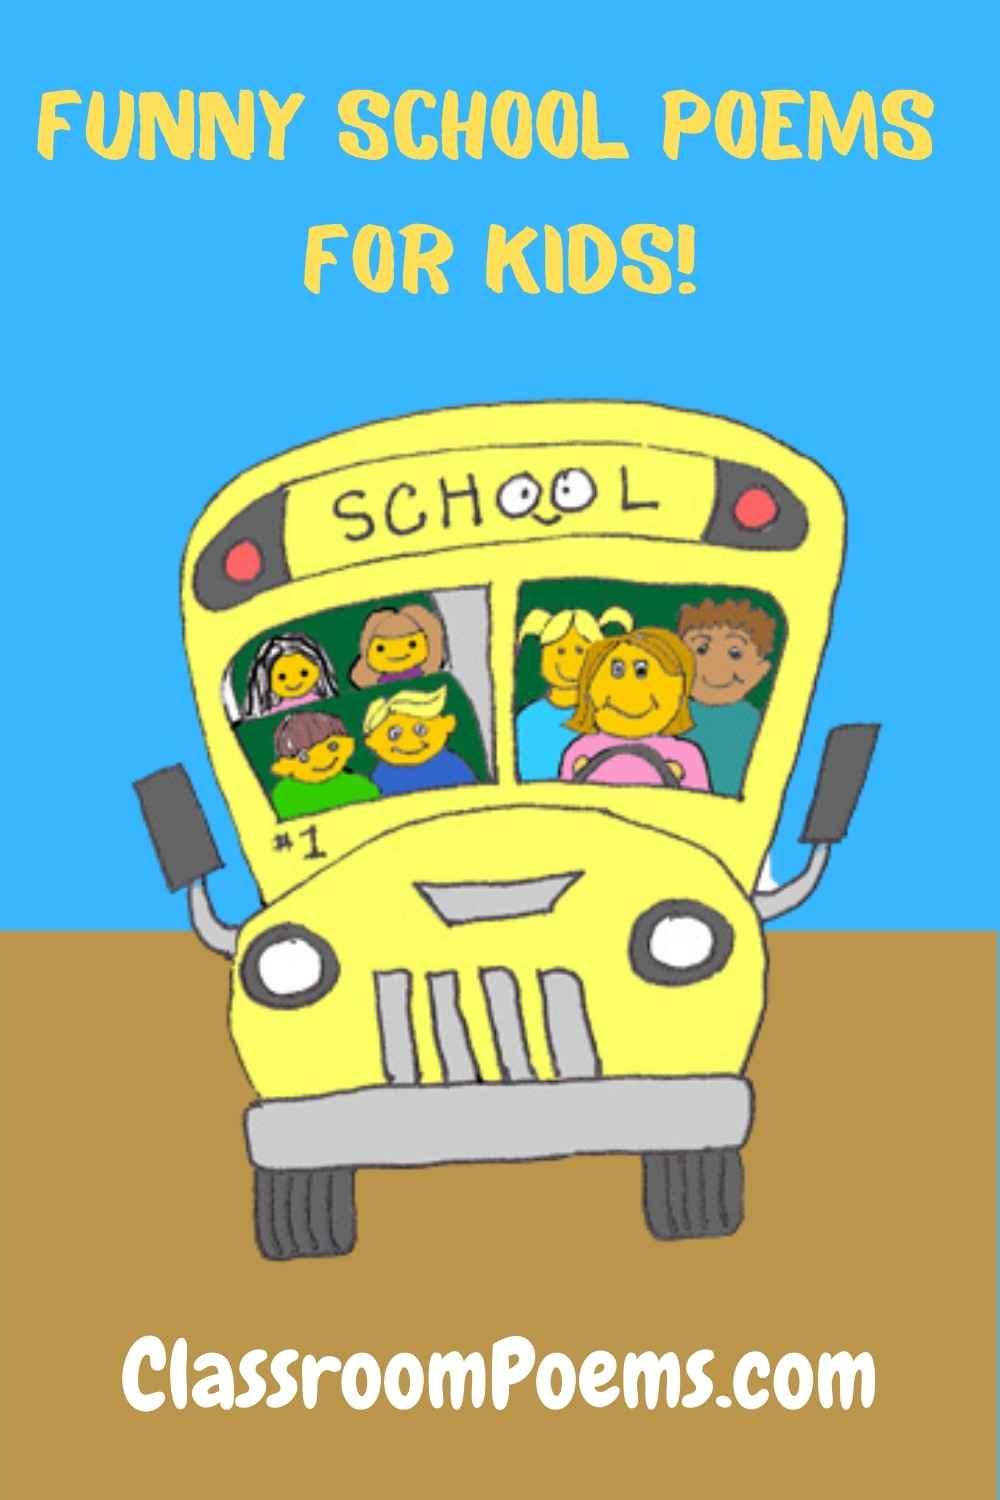 Funny school poems for kids by Denise Rodgers on ClassroomPoems.com.